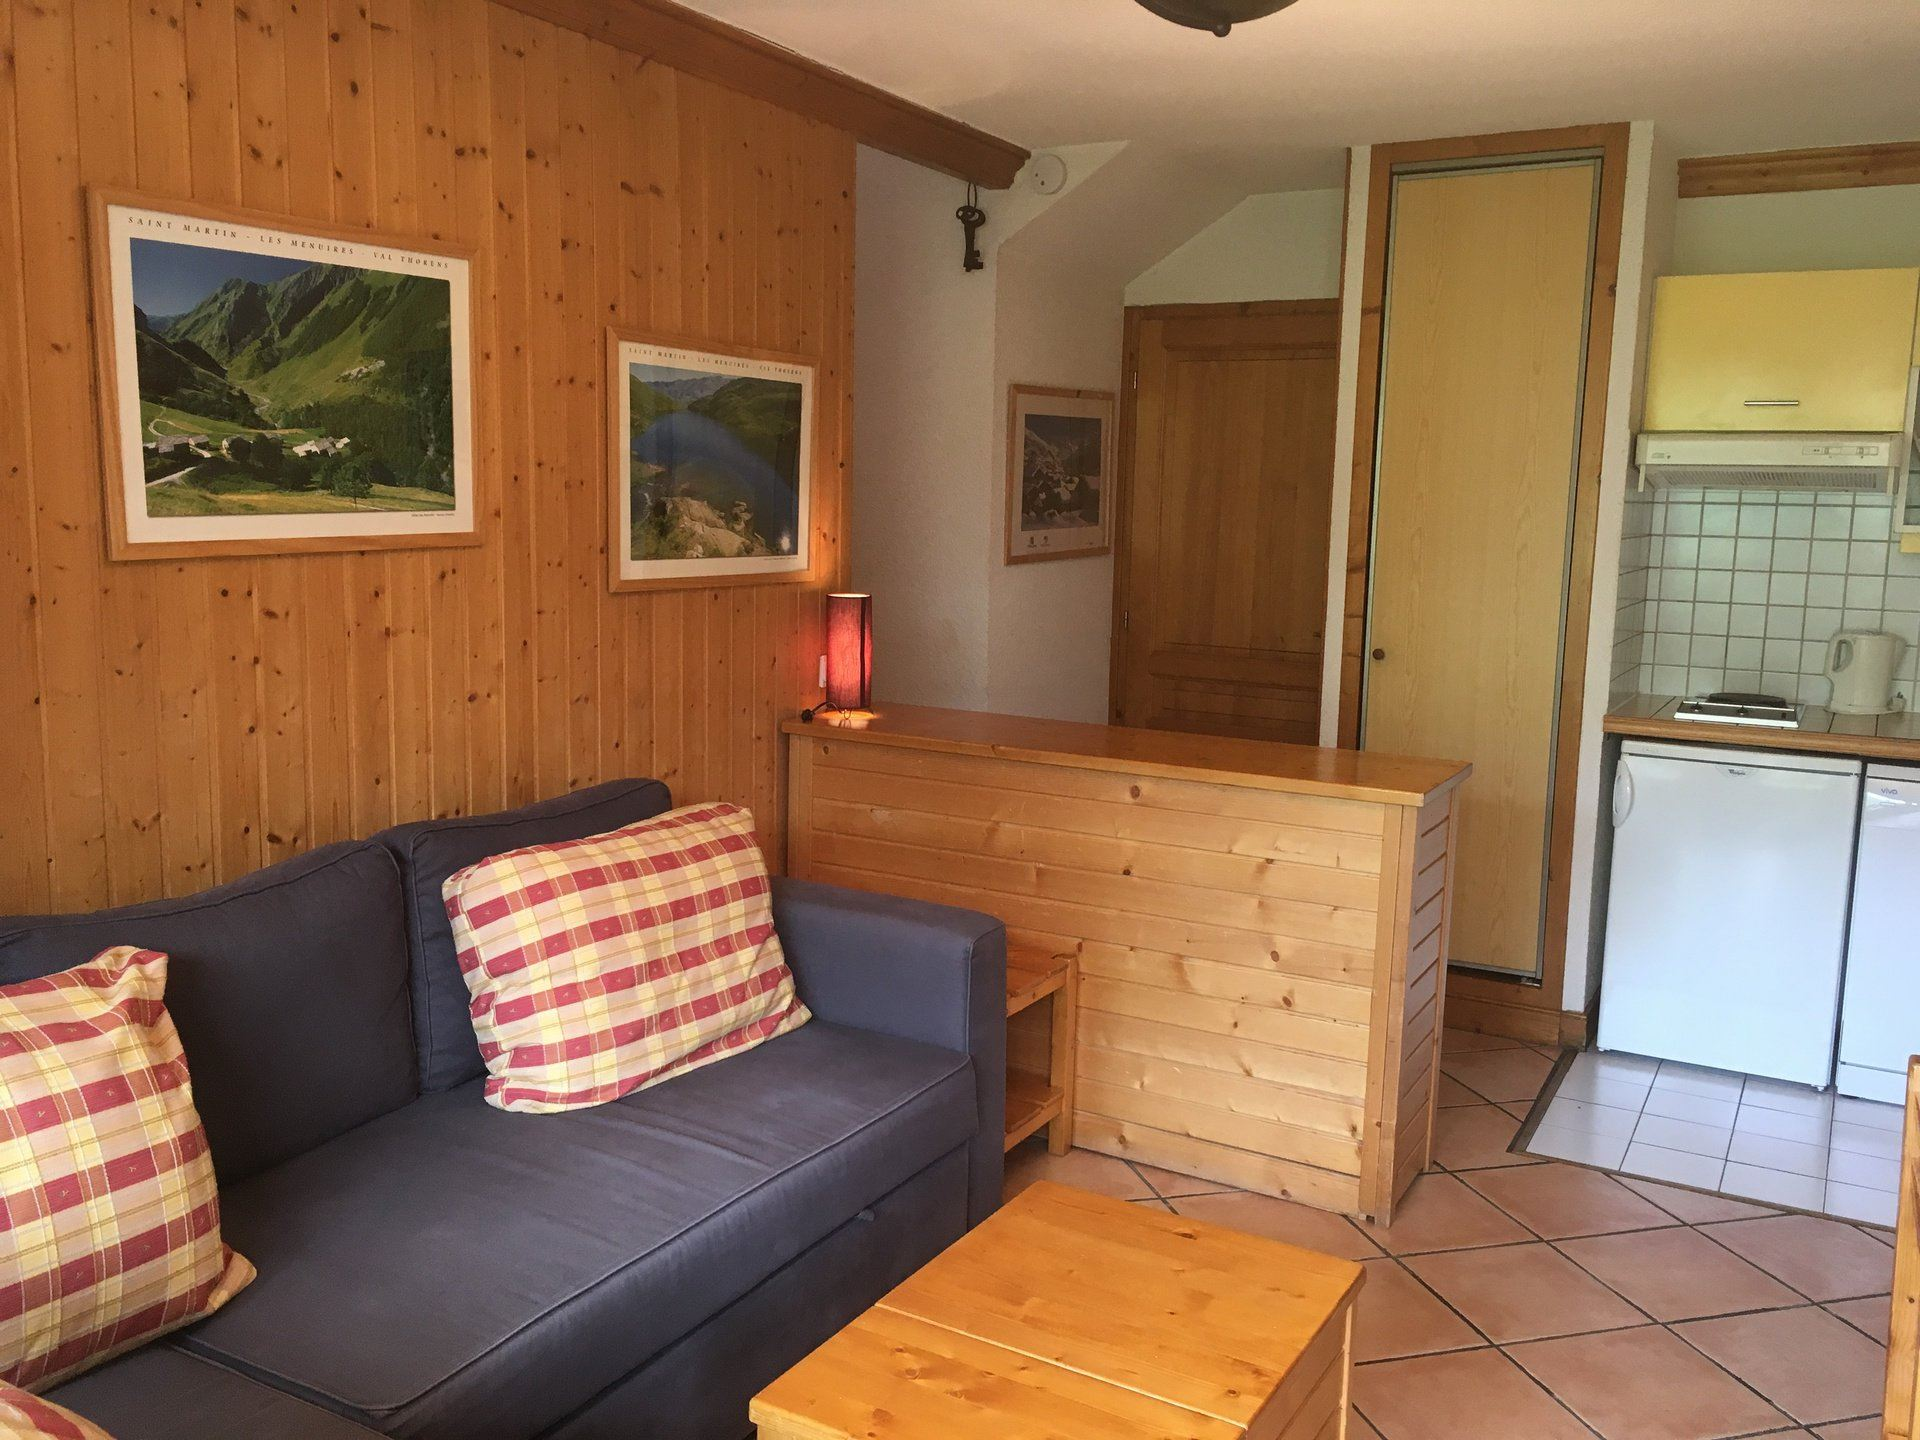 3 Rooms 6 Pers ski-in ski-out / BALCONS DE TOUGNETTE 11